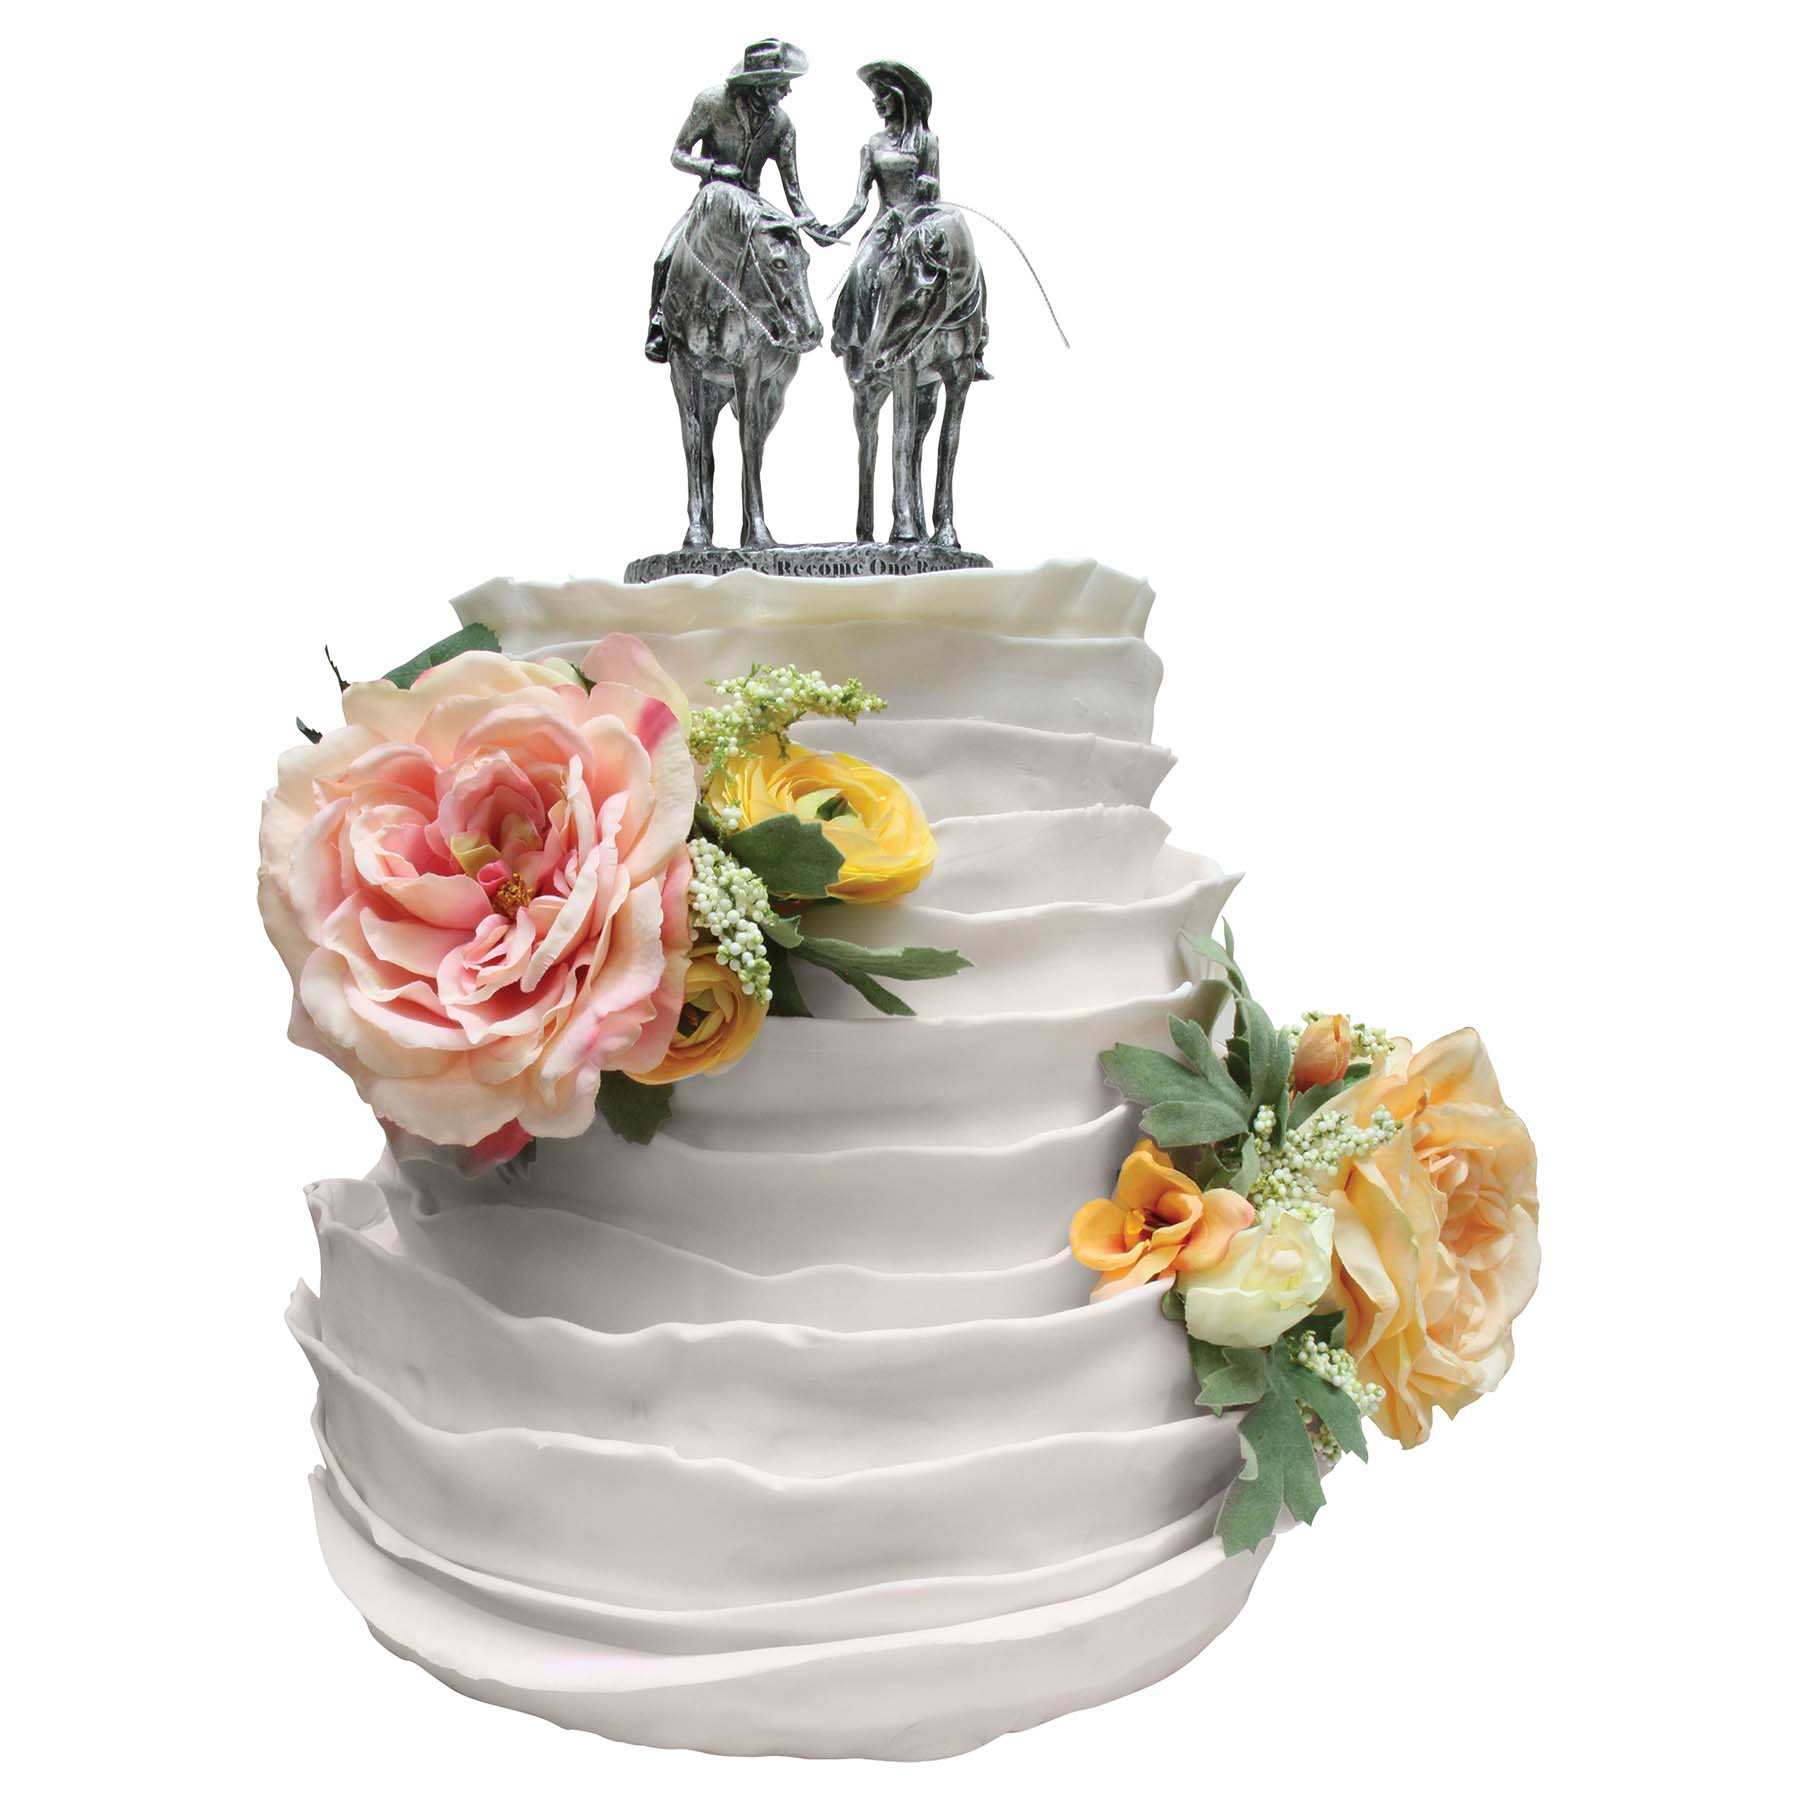 Two Trails Become One Cake Topper